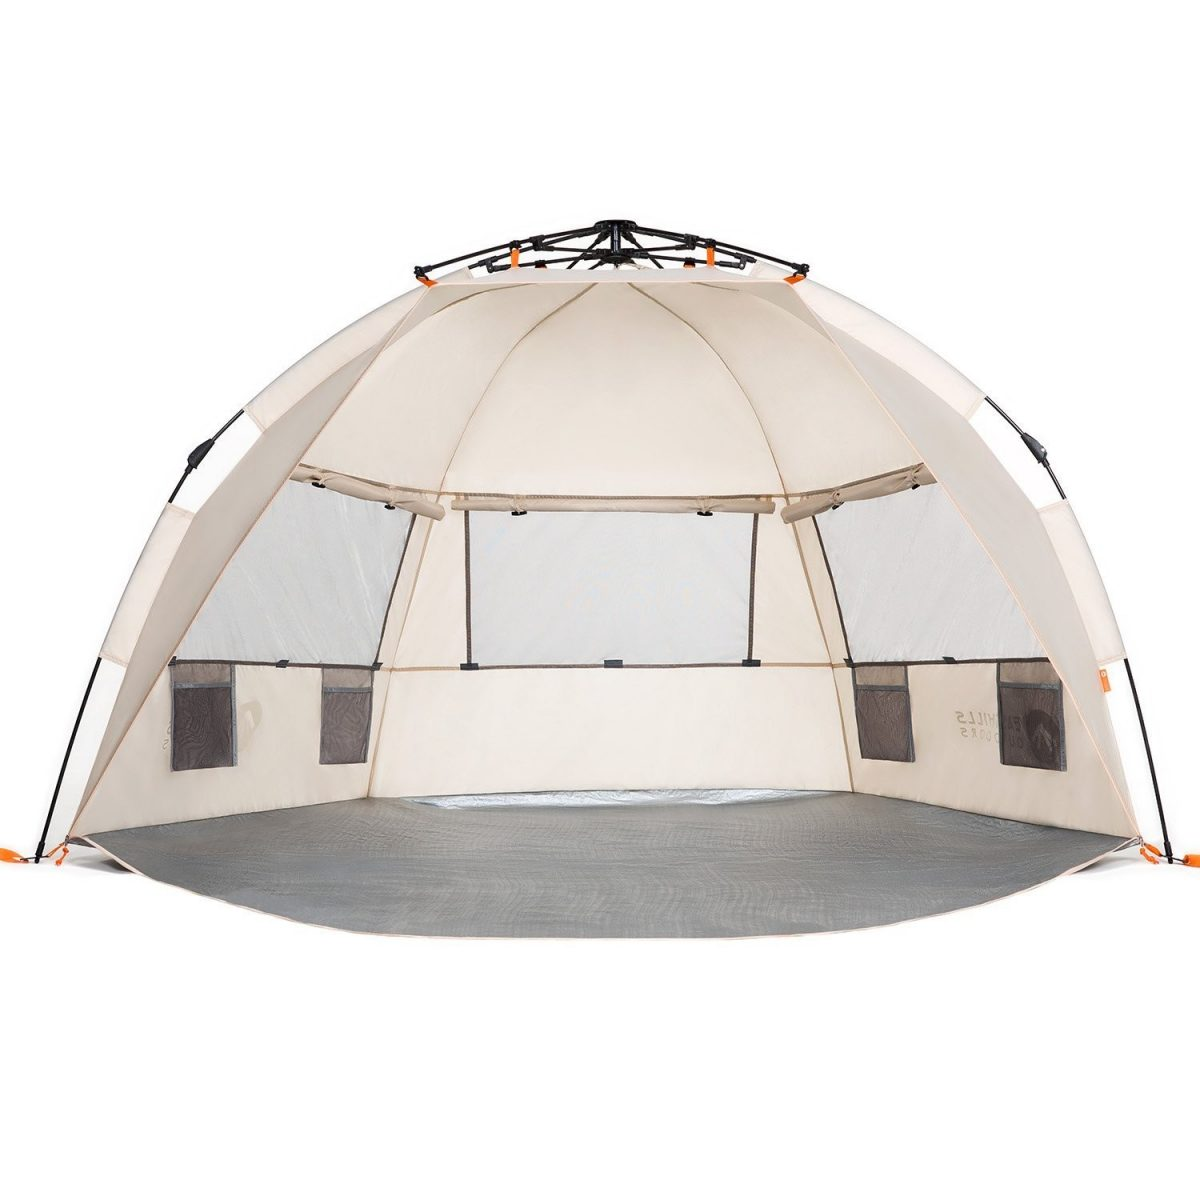 East hills Easy Up beach tent